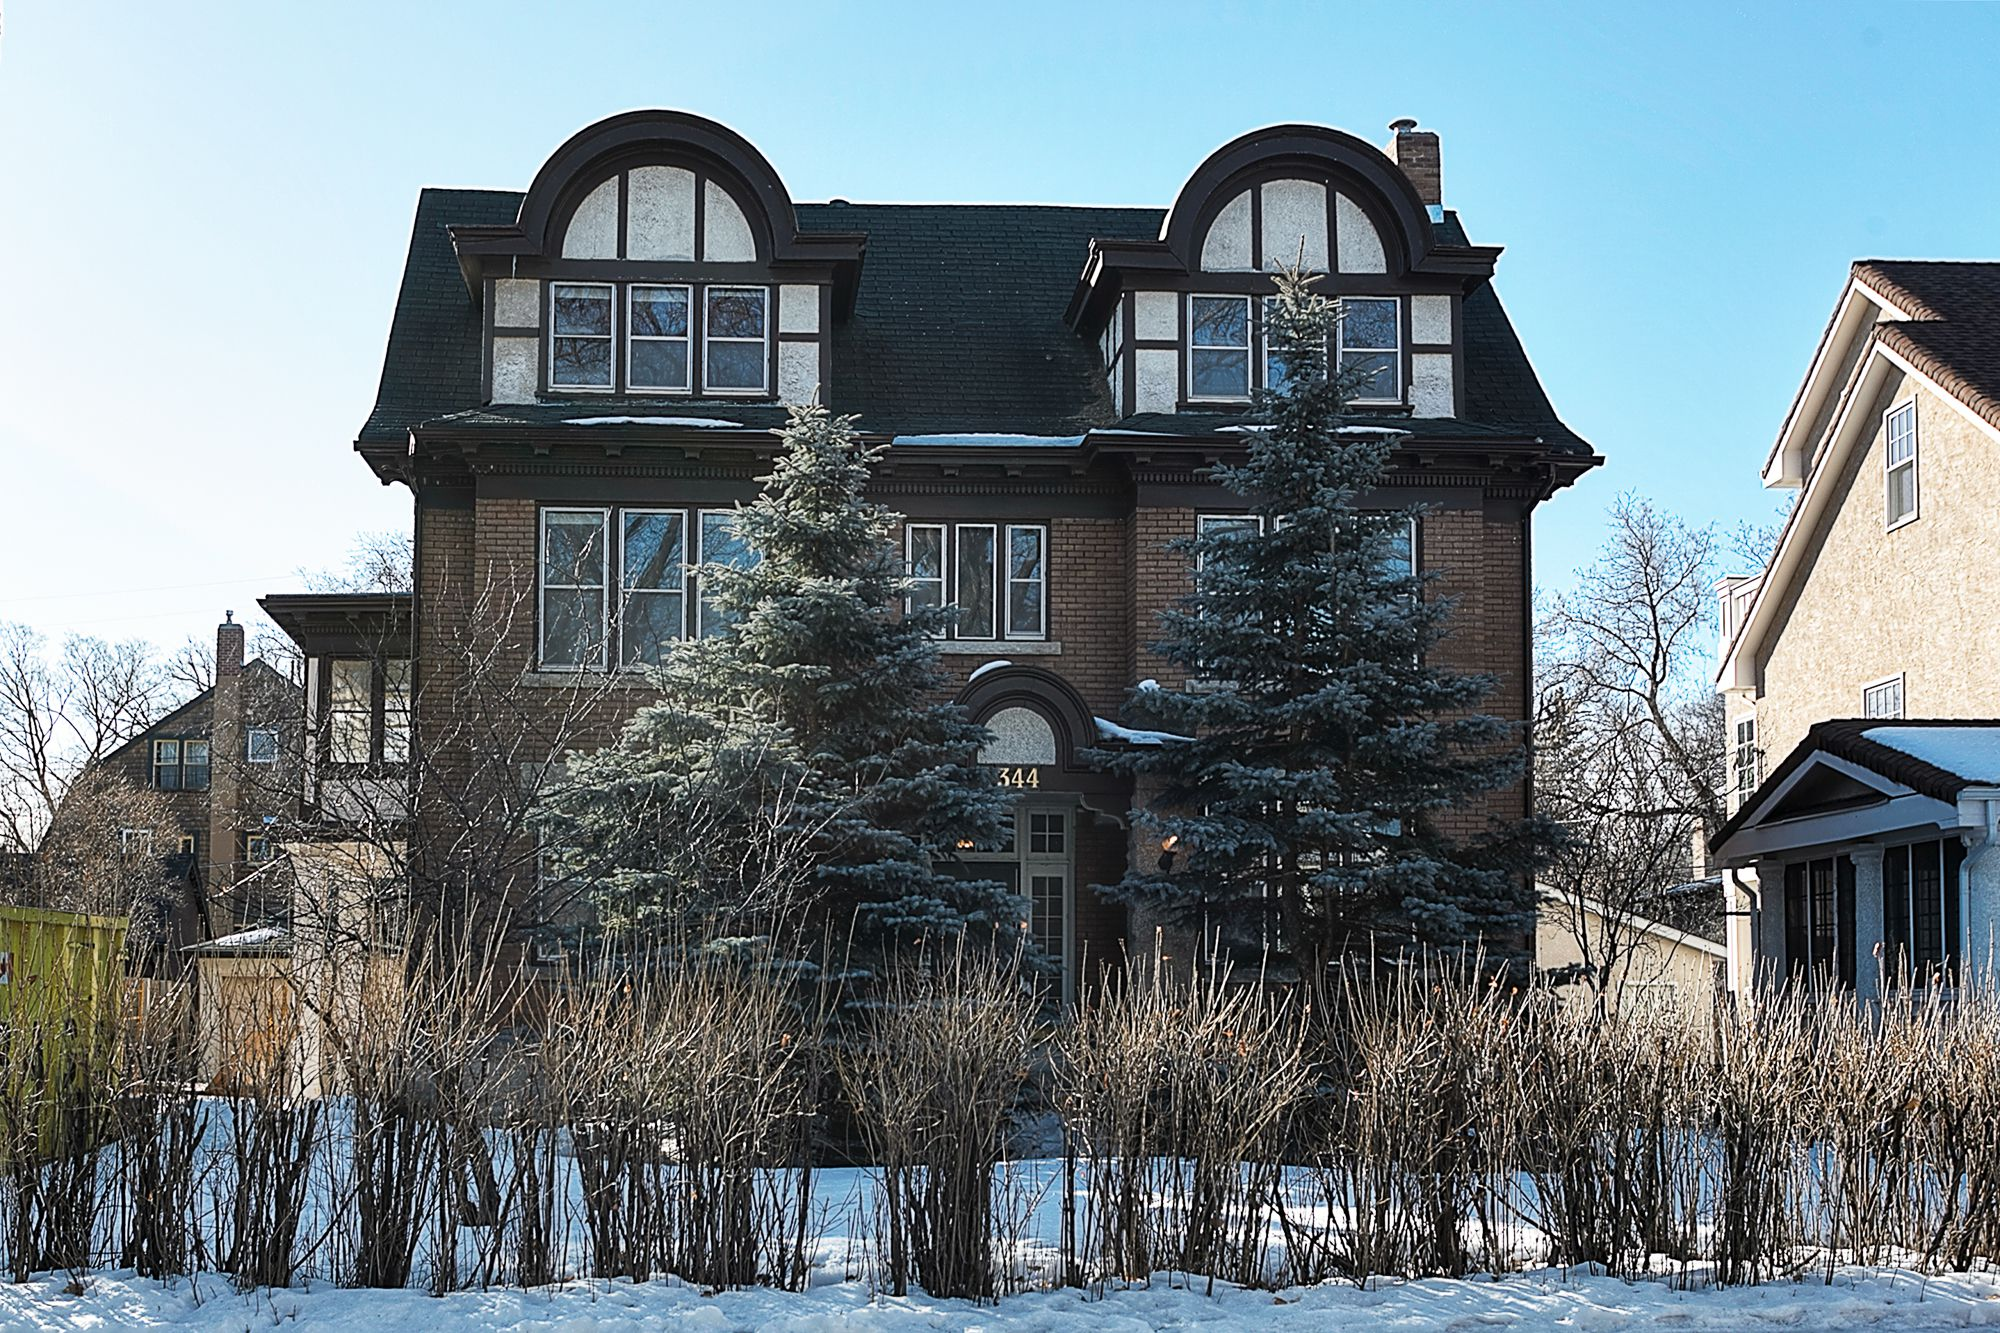 Main Photo: 344 Yale Avenue in Winnipeg: Crescentwood Single Family Detached for sale (1C)  : MLS®# 1807299